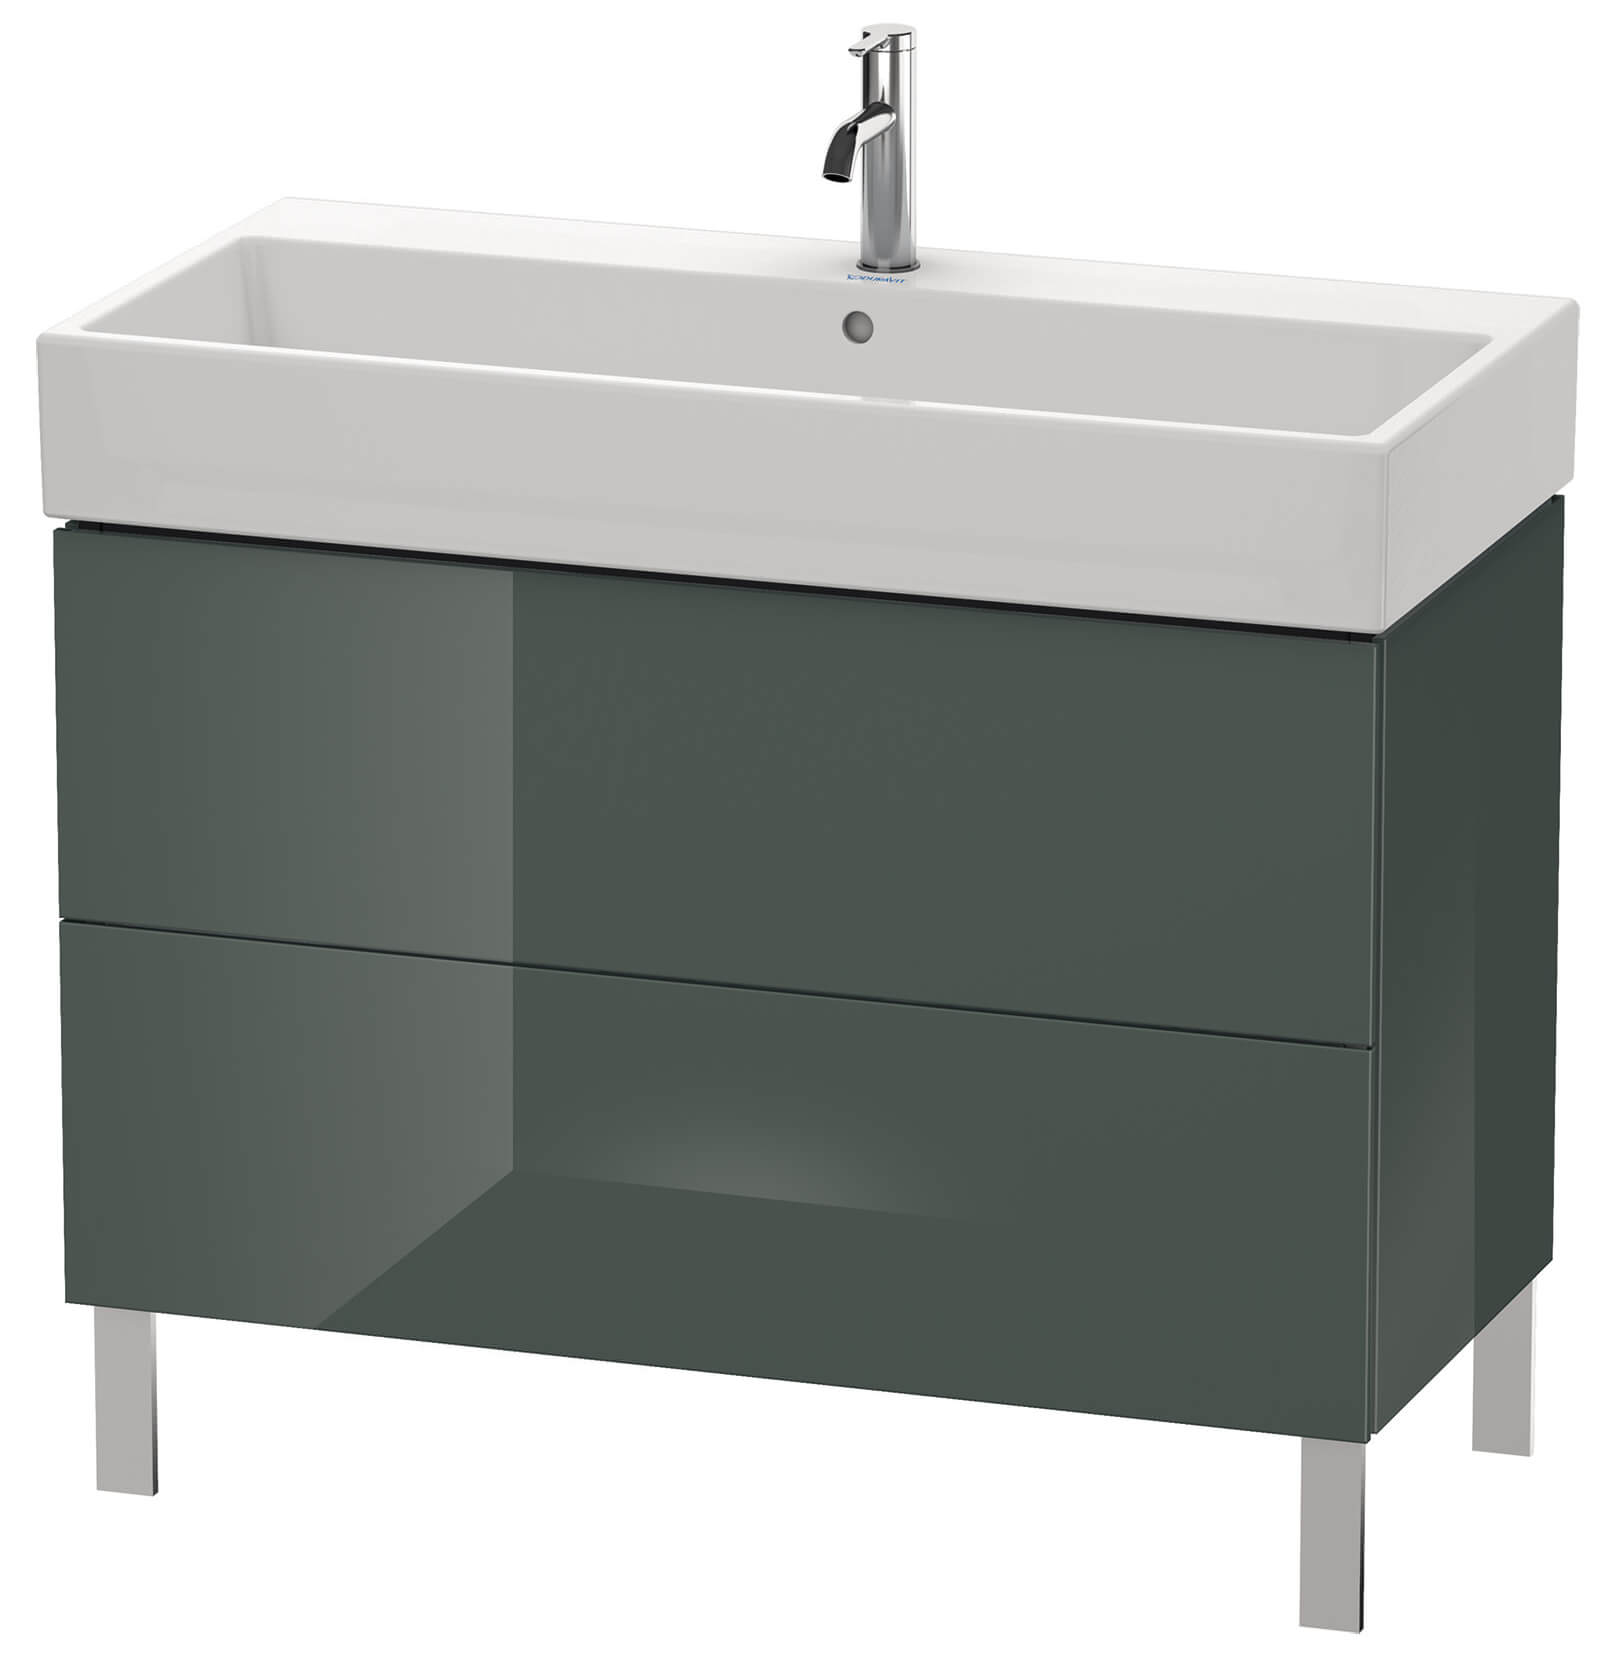 duravit l cube 984mm floor standing vanity unit with vero air basin. Black Bedroom Furniture Sets. Home Design Ideas